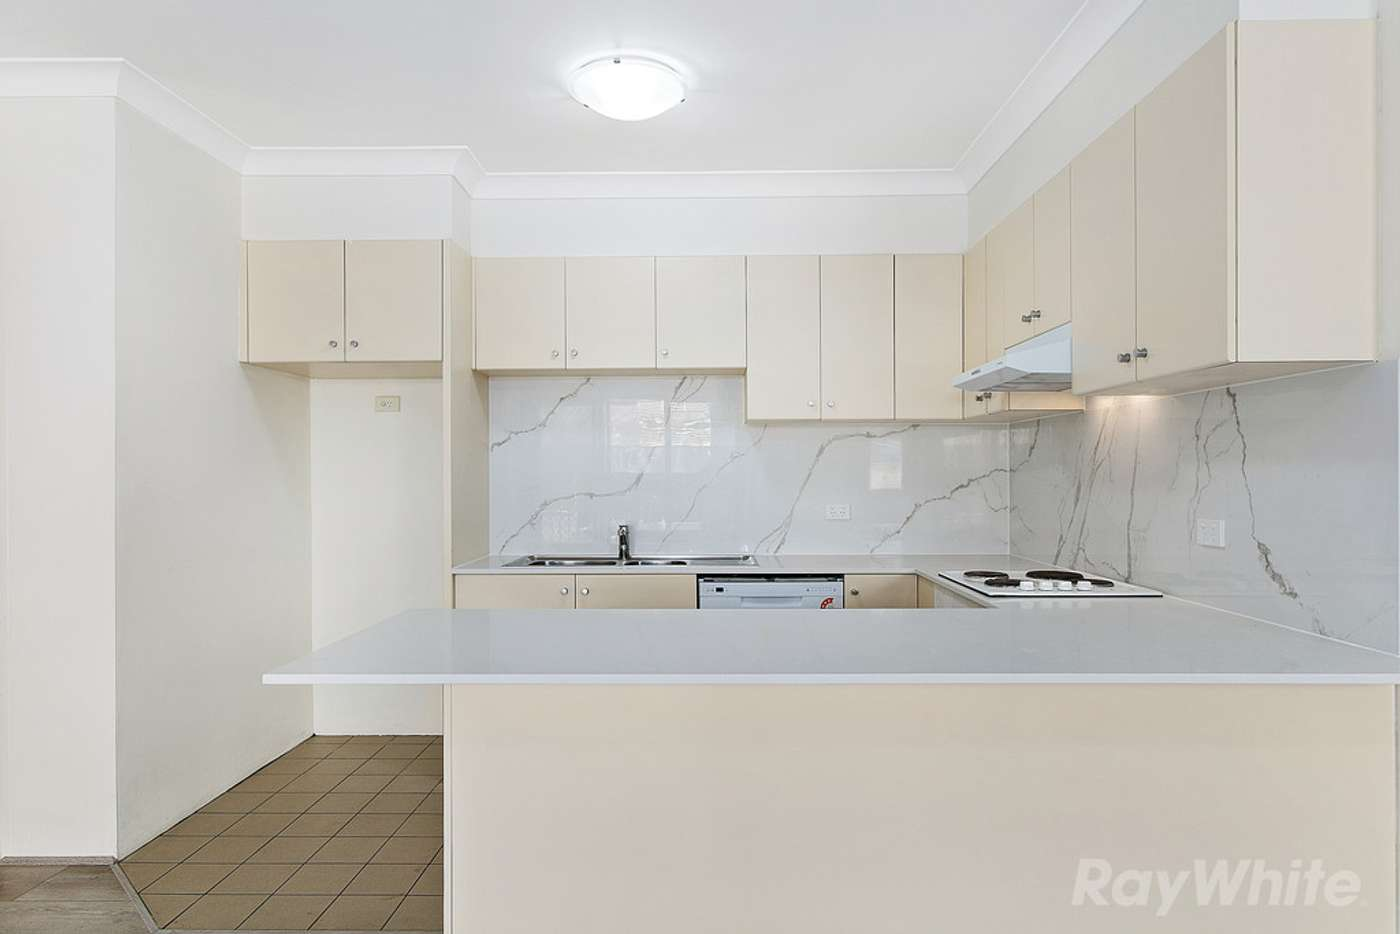 Main view of Homely unit listing, 54/46 Dunblane Street, Camperdown NSW 2050